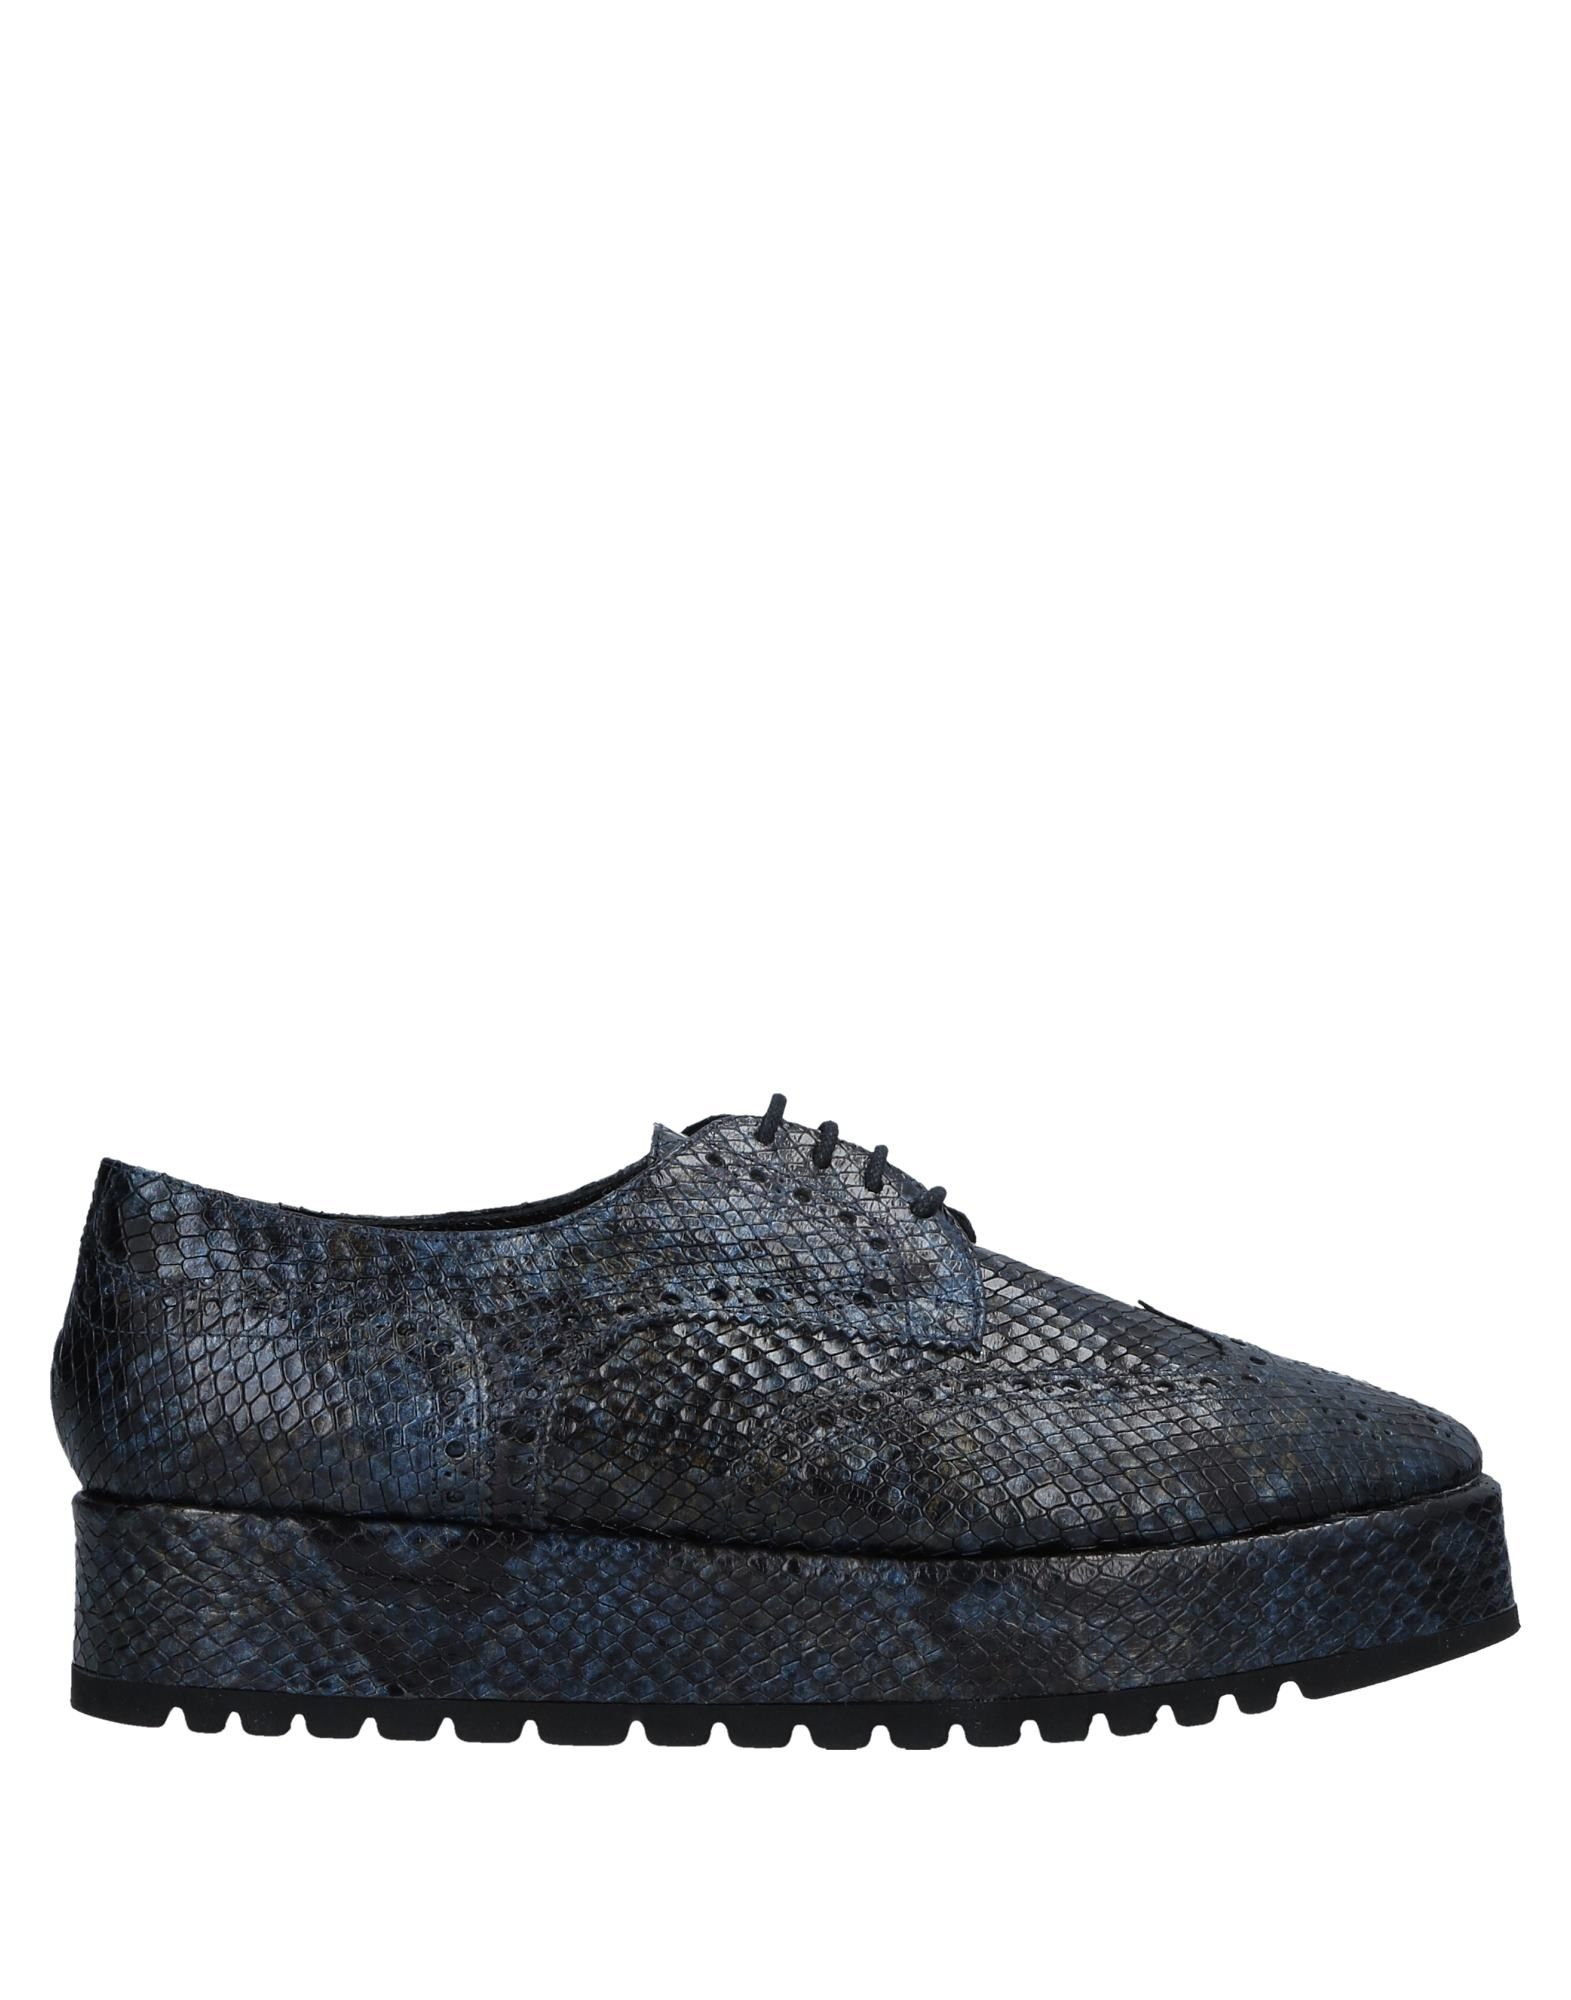 LOLO Laced Shoes in Dark Blue